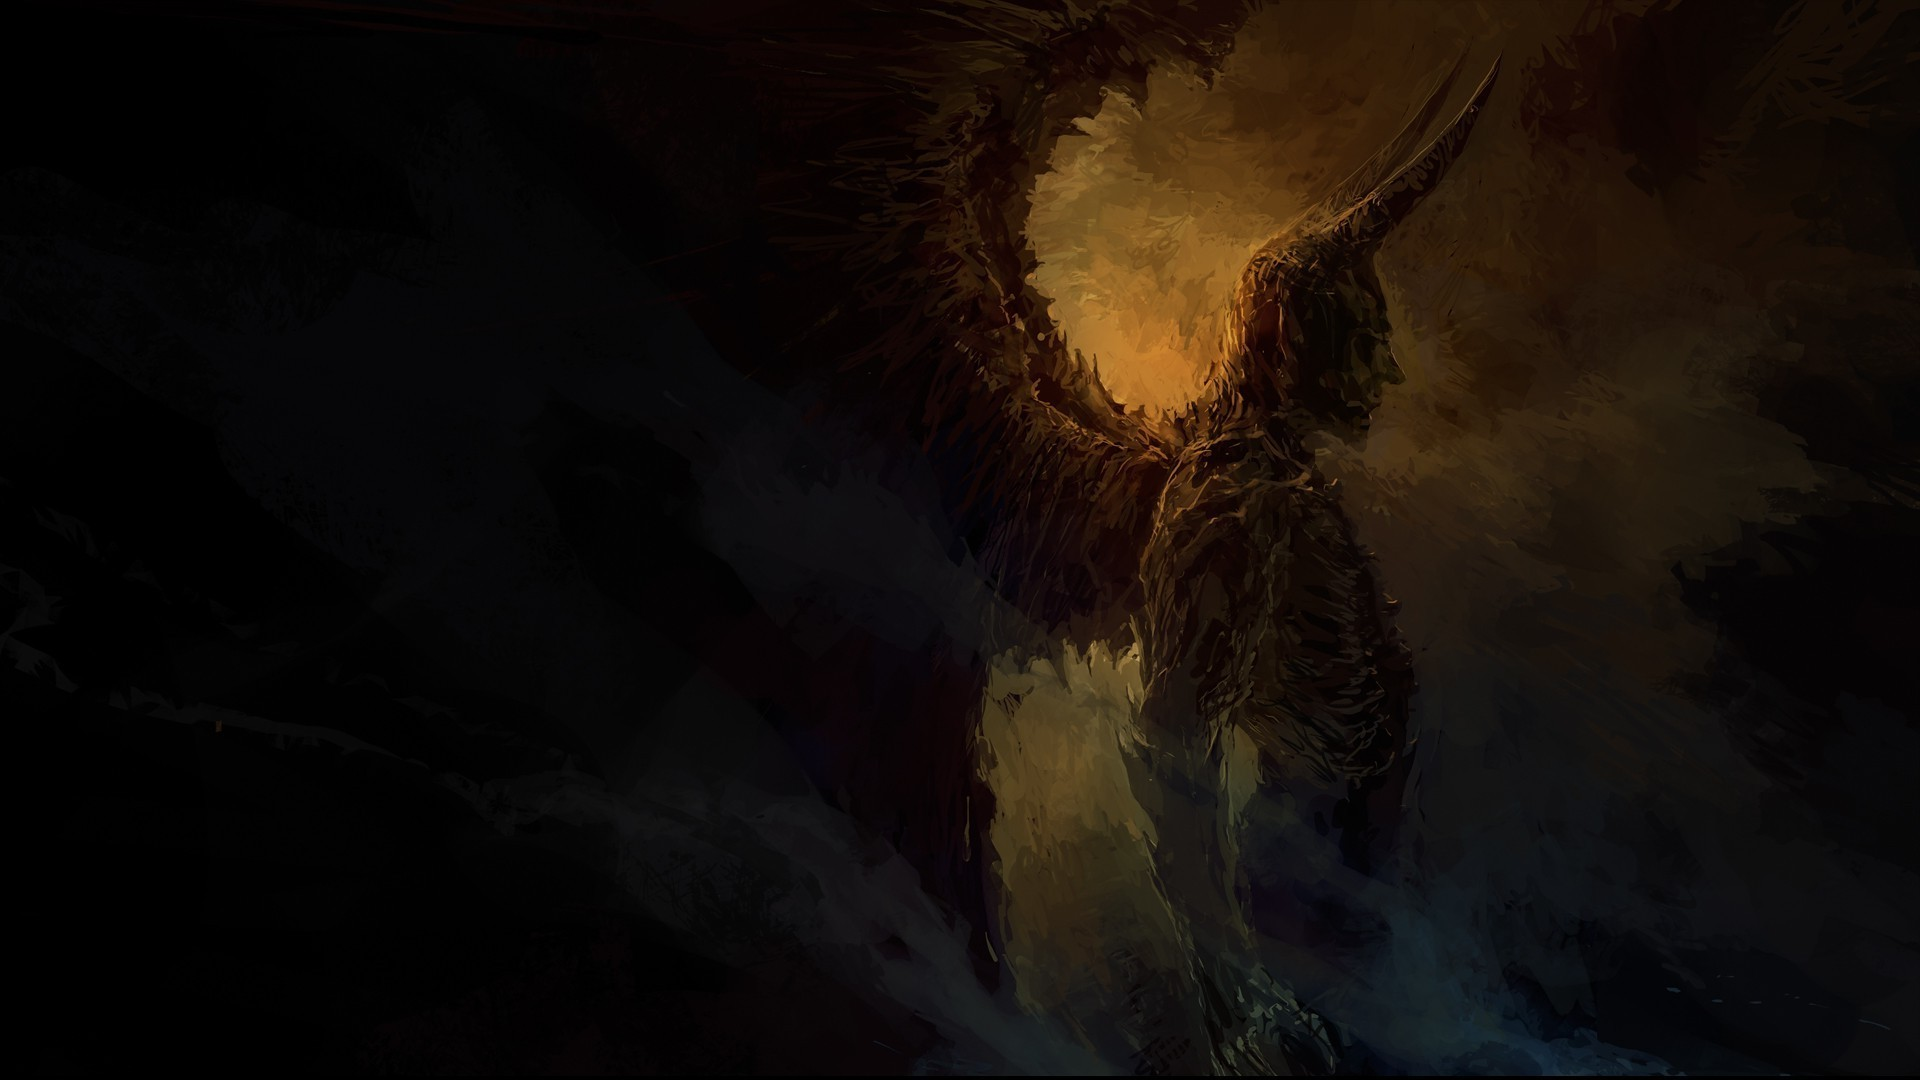 Collection Of Devil Wallpaper On HDWallpapers